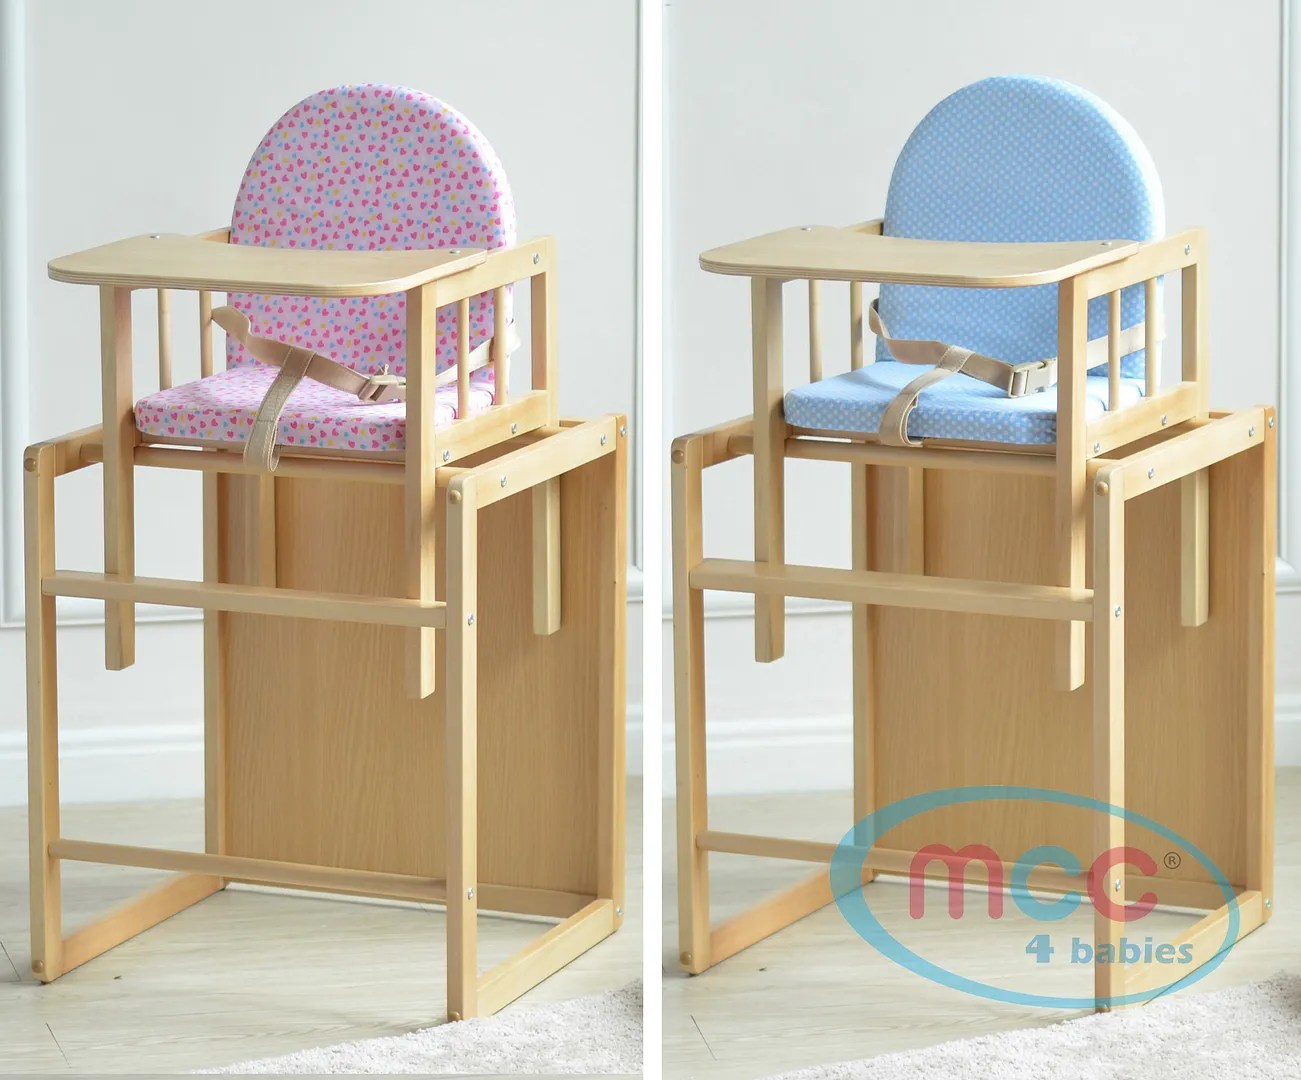 Baby Play Chair Mcc Brand New 3 In 1 Baby Wooden High Chair With Play